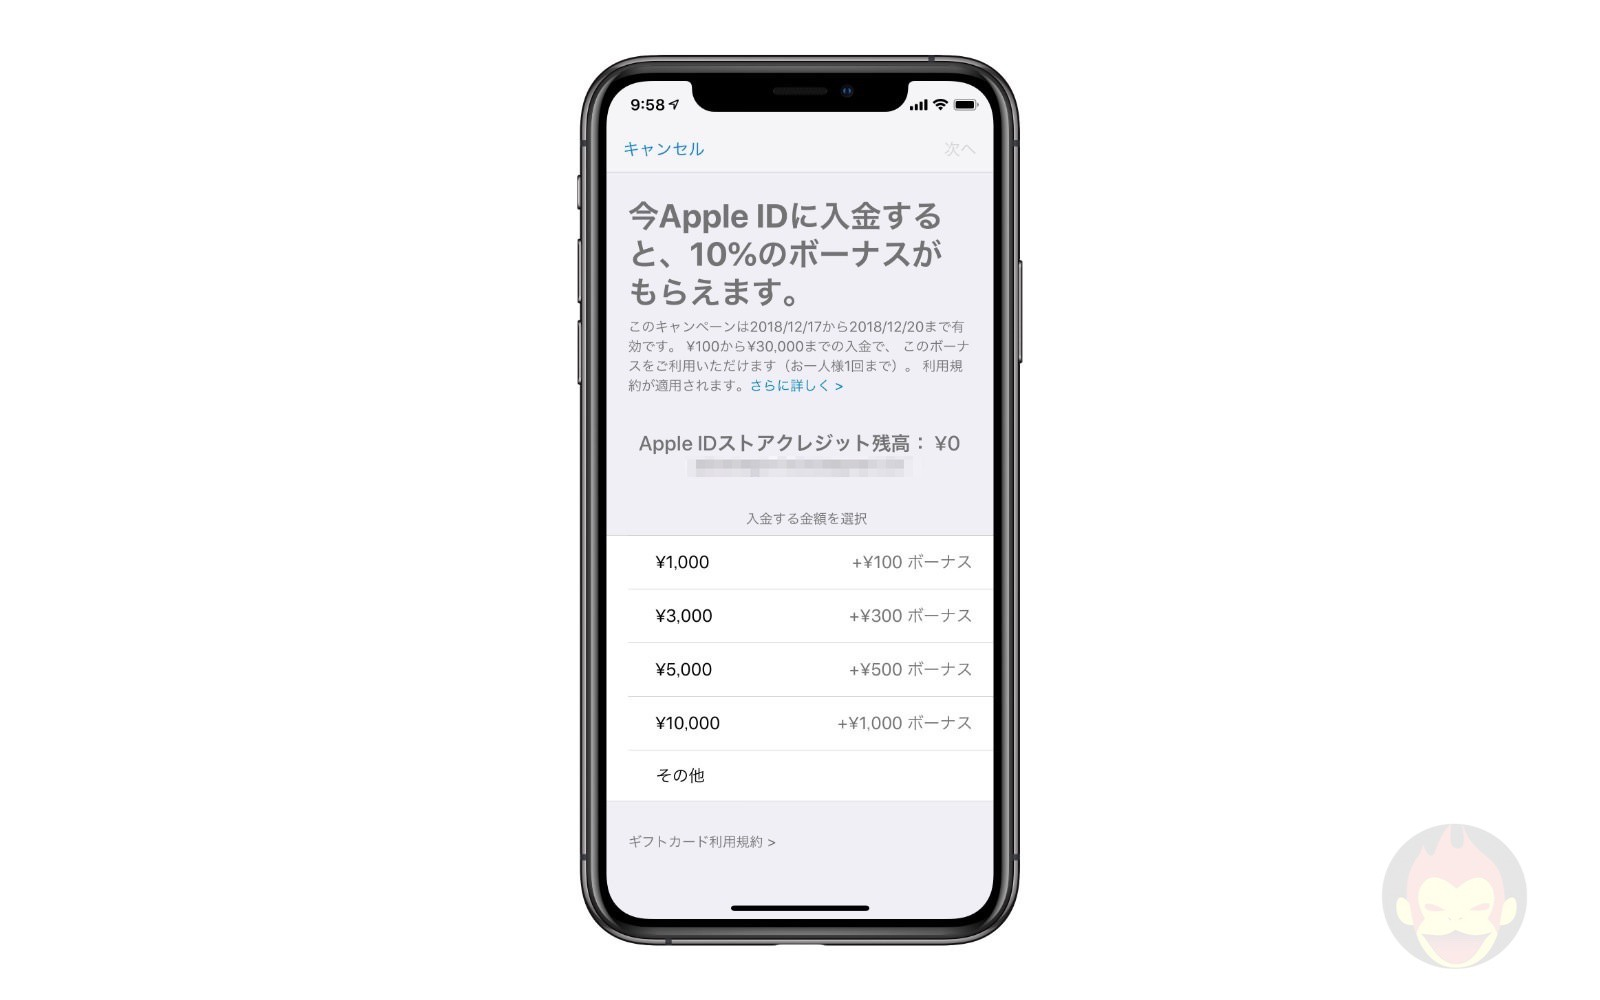 Apple-ID-Bonus-01.jpg